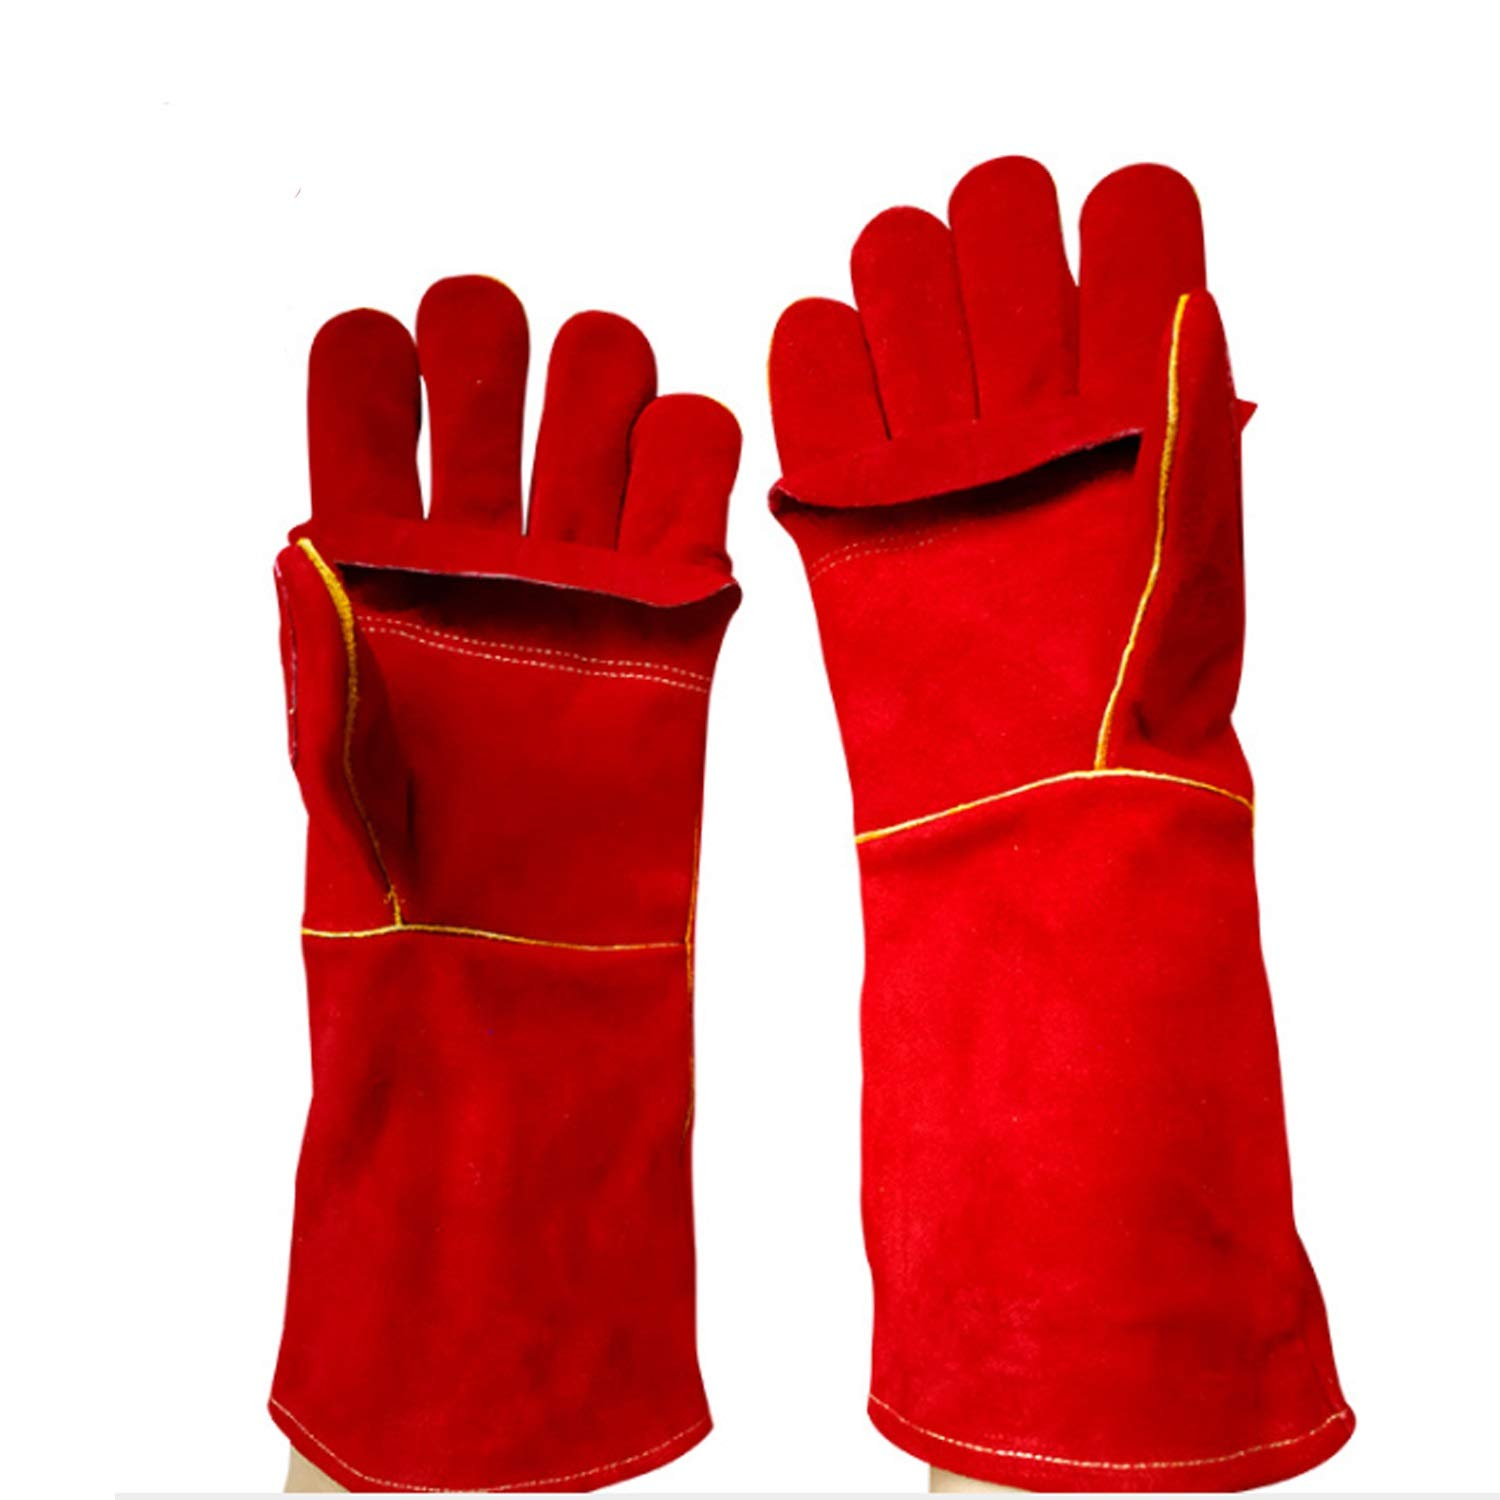 Microwave Gloves 2 Pairs Safety Welding Gloves Heat Insulation Gloves Cowhide Welding Gloves 16 Inches Anti-scalding Gloves Oven Mitts YLYXWBUS (Color : Red, Size : L-10 Pair) by YLYXWBUS Mitts